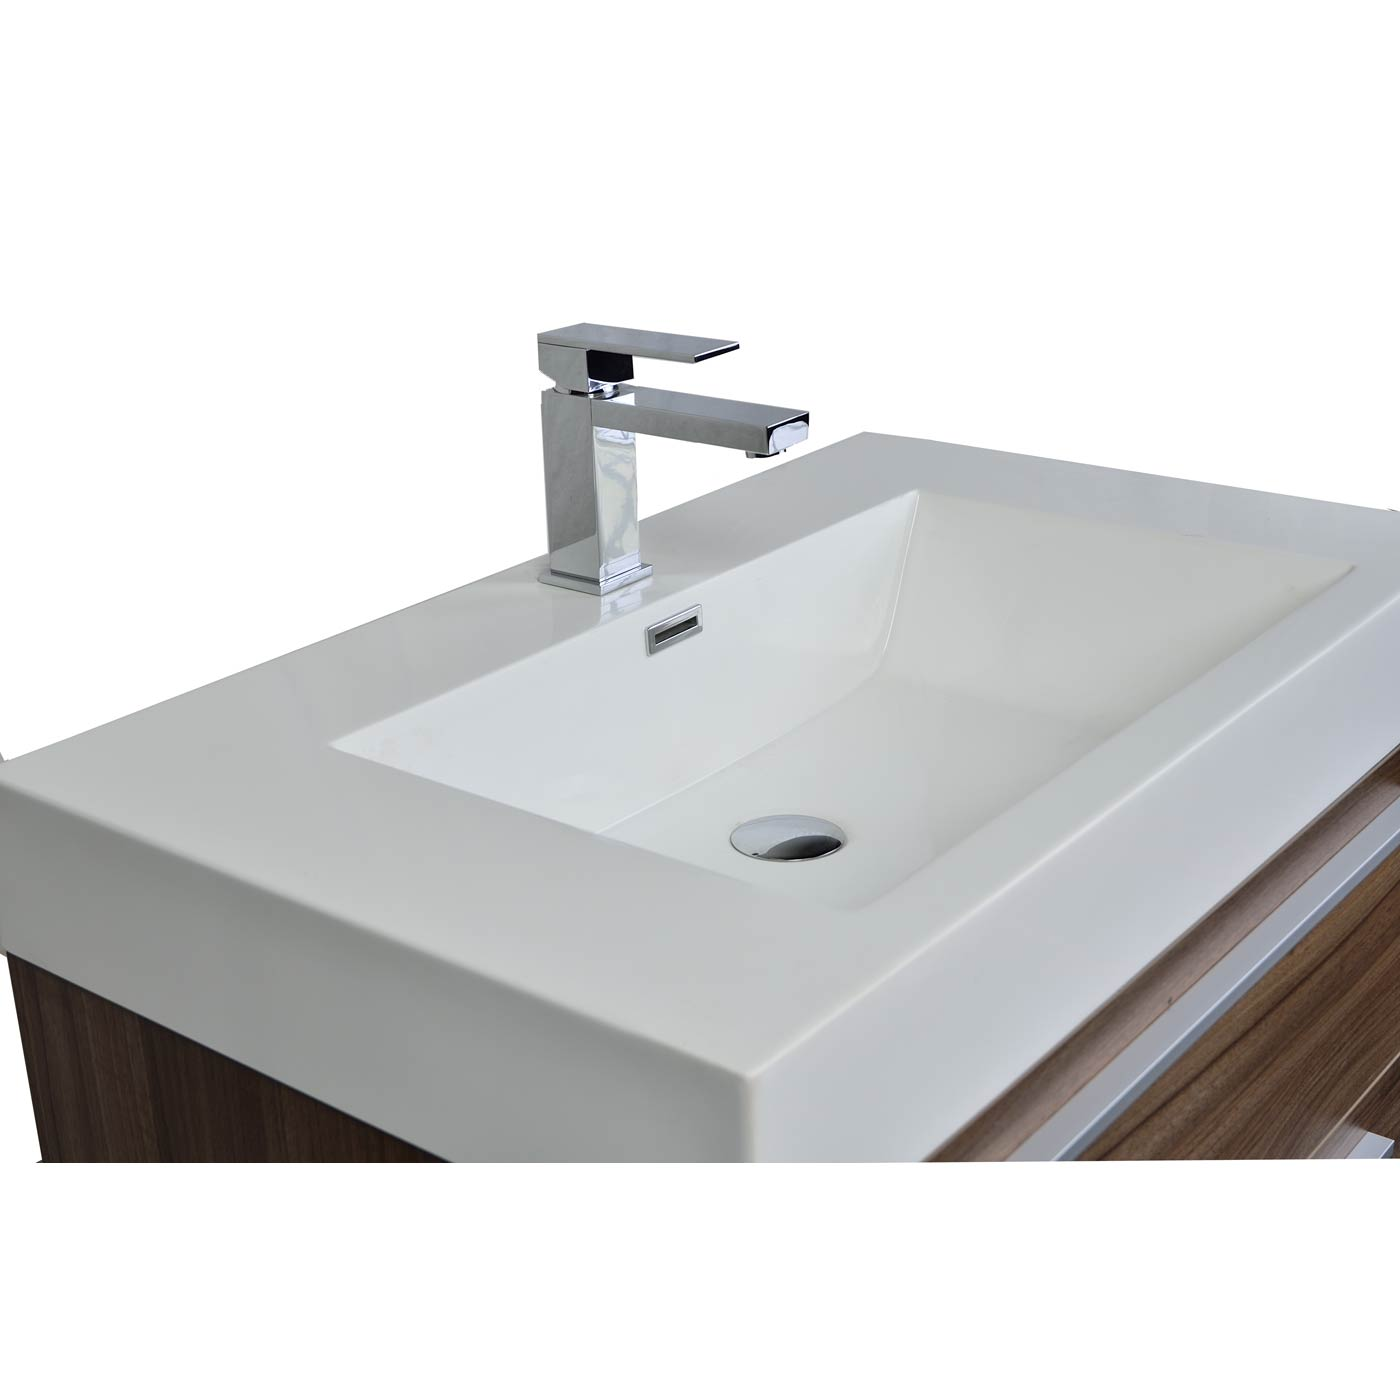 http://www.conceptbaths.com/images/detailed/1/modern-bathroom-vanity-free-shipping1409958544540a4290230df.jpg